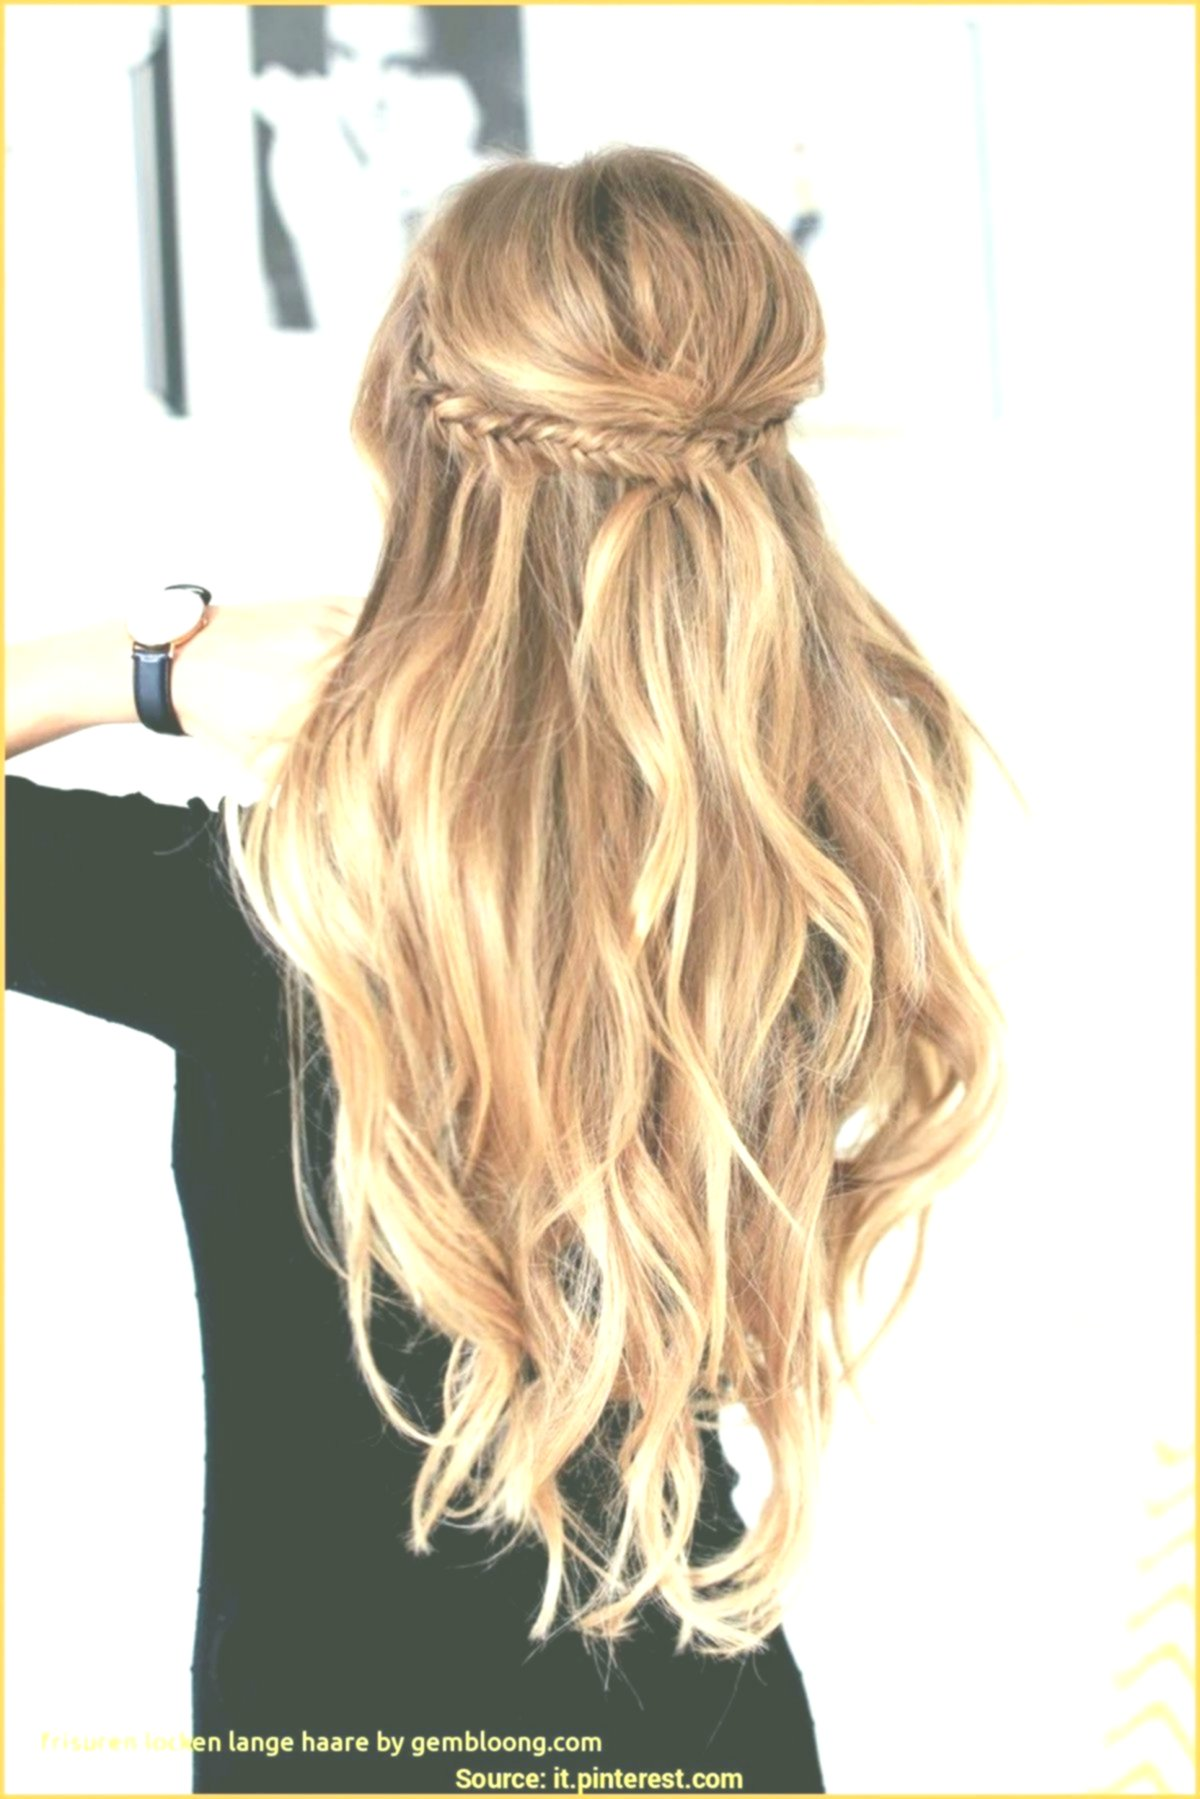 fresh hairstyles long hair curls architecture-Superb Hairstyles Long Hair Curls Image